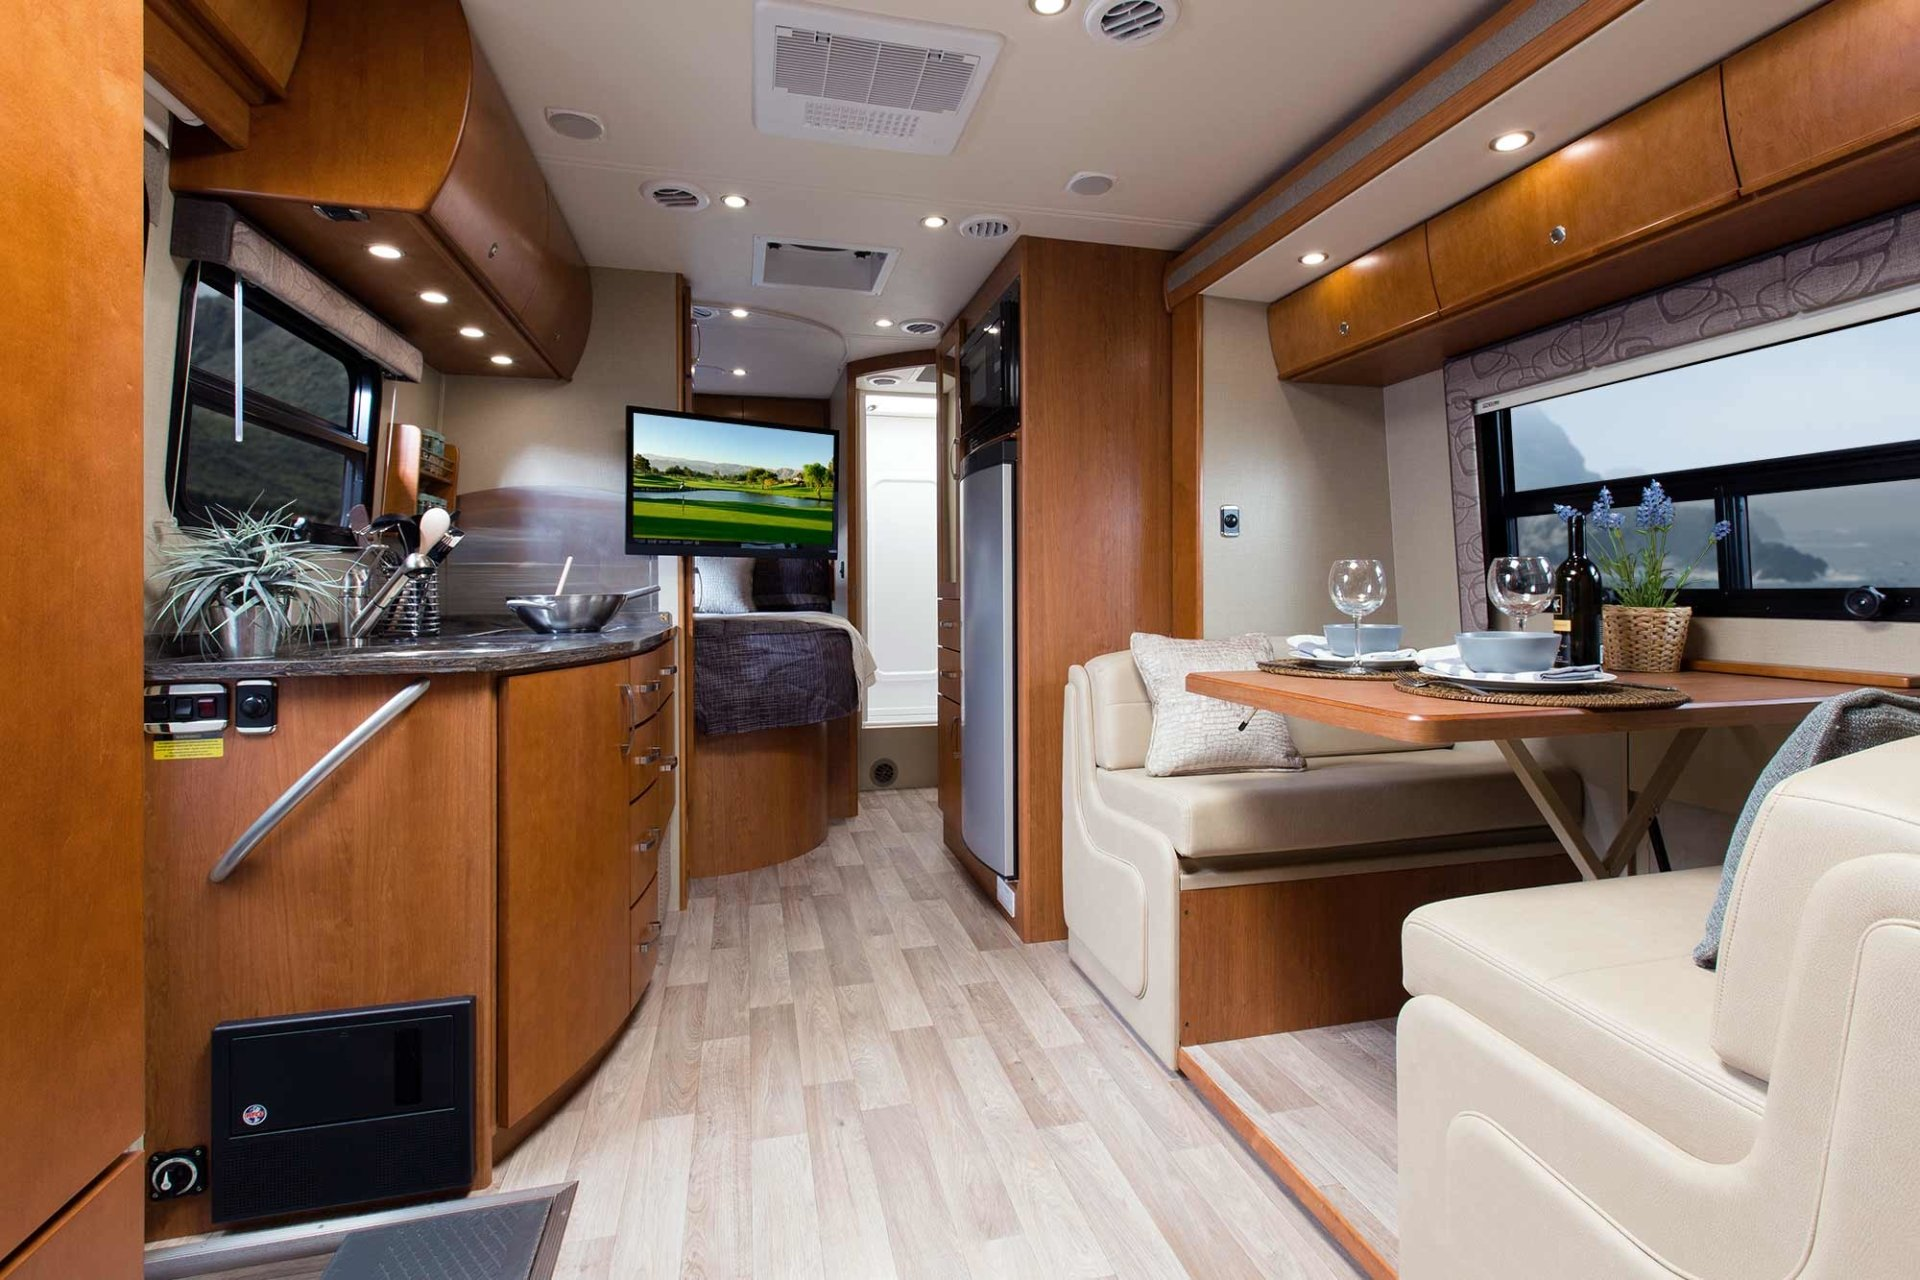 Mercedes Benz Sprinter Interior Full Hd Wallpaper And Background Image 2000x1333 Id 644091